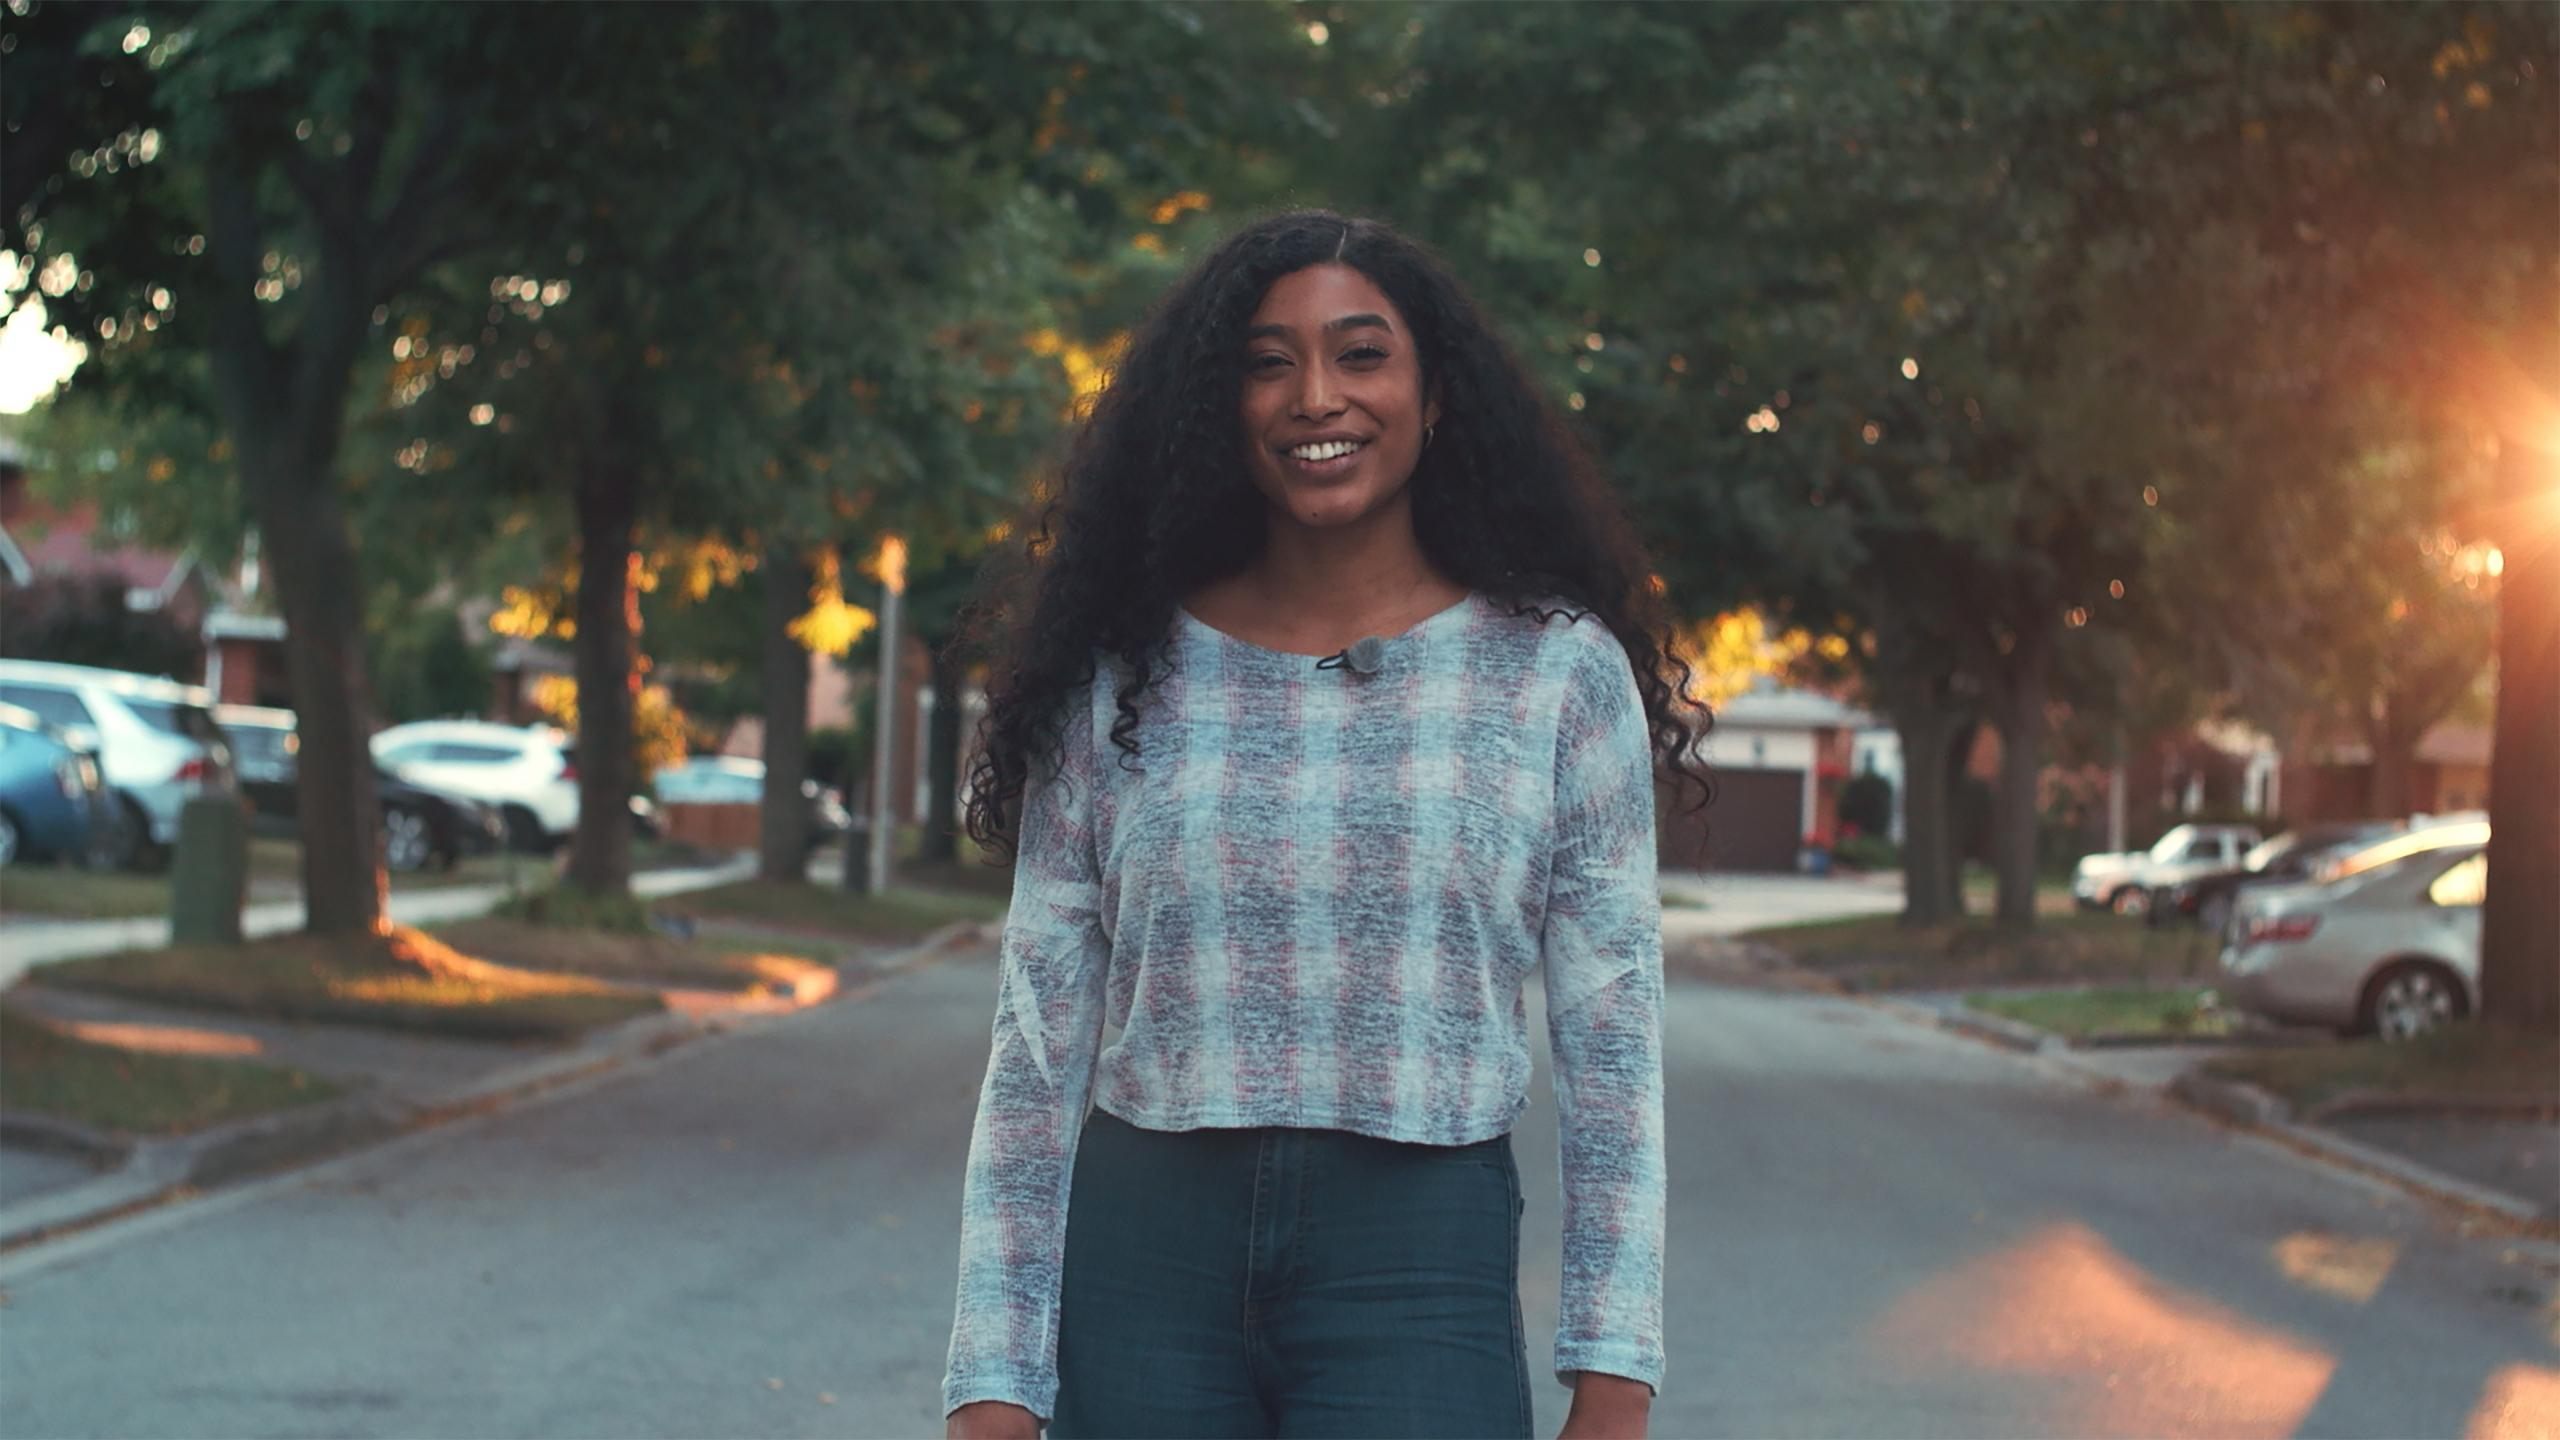 A photo of Naja Stanford standing in the street smiling at the camera.